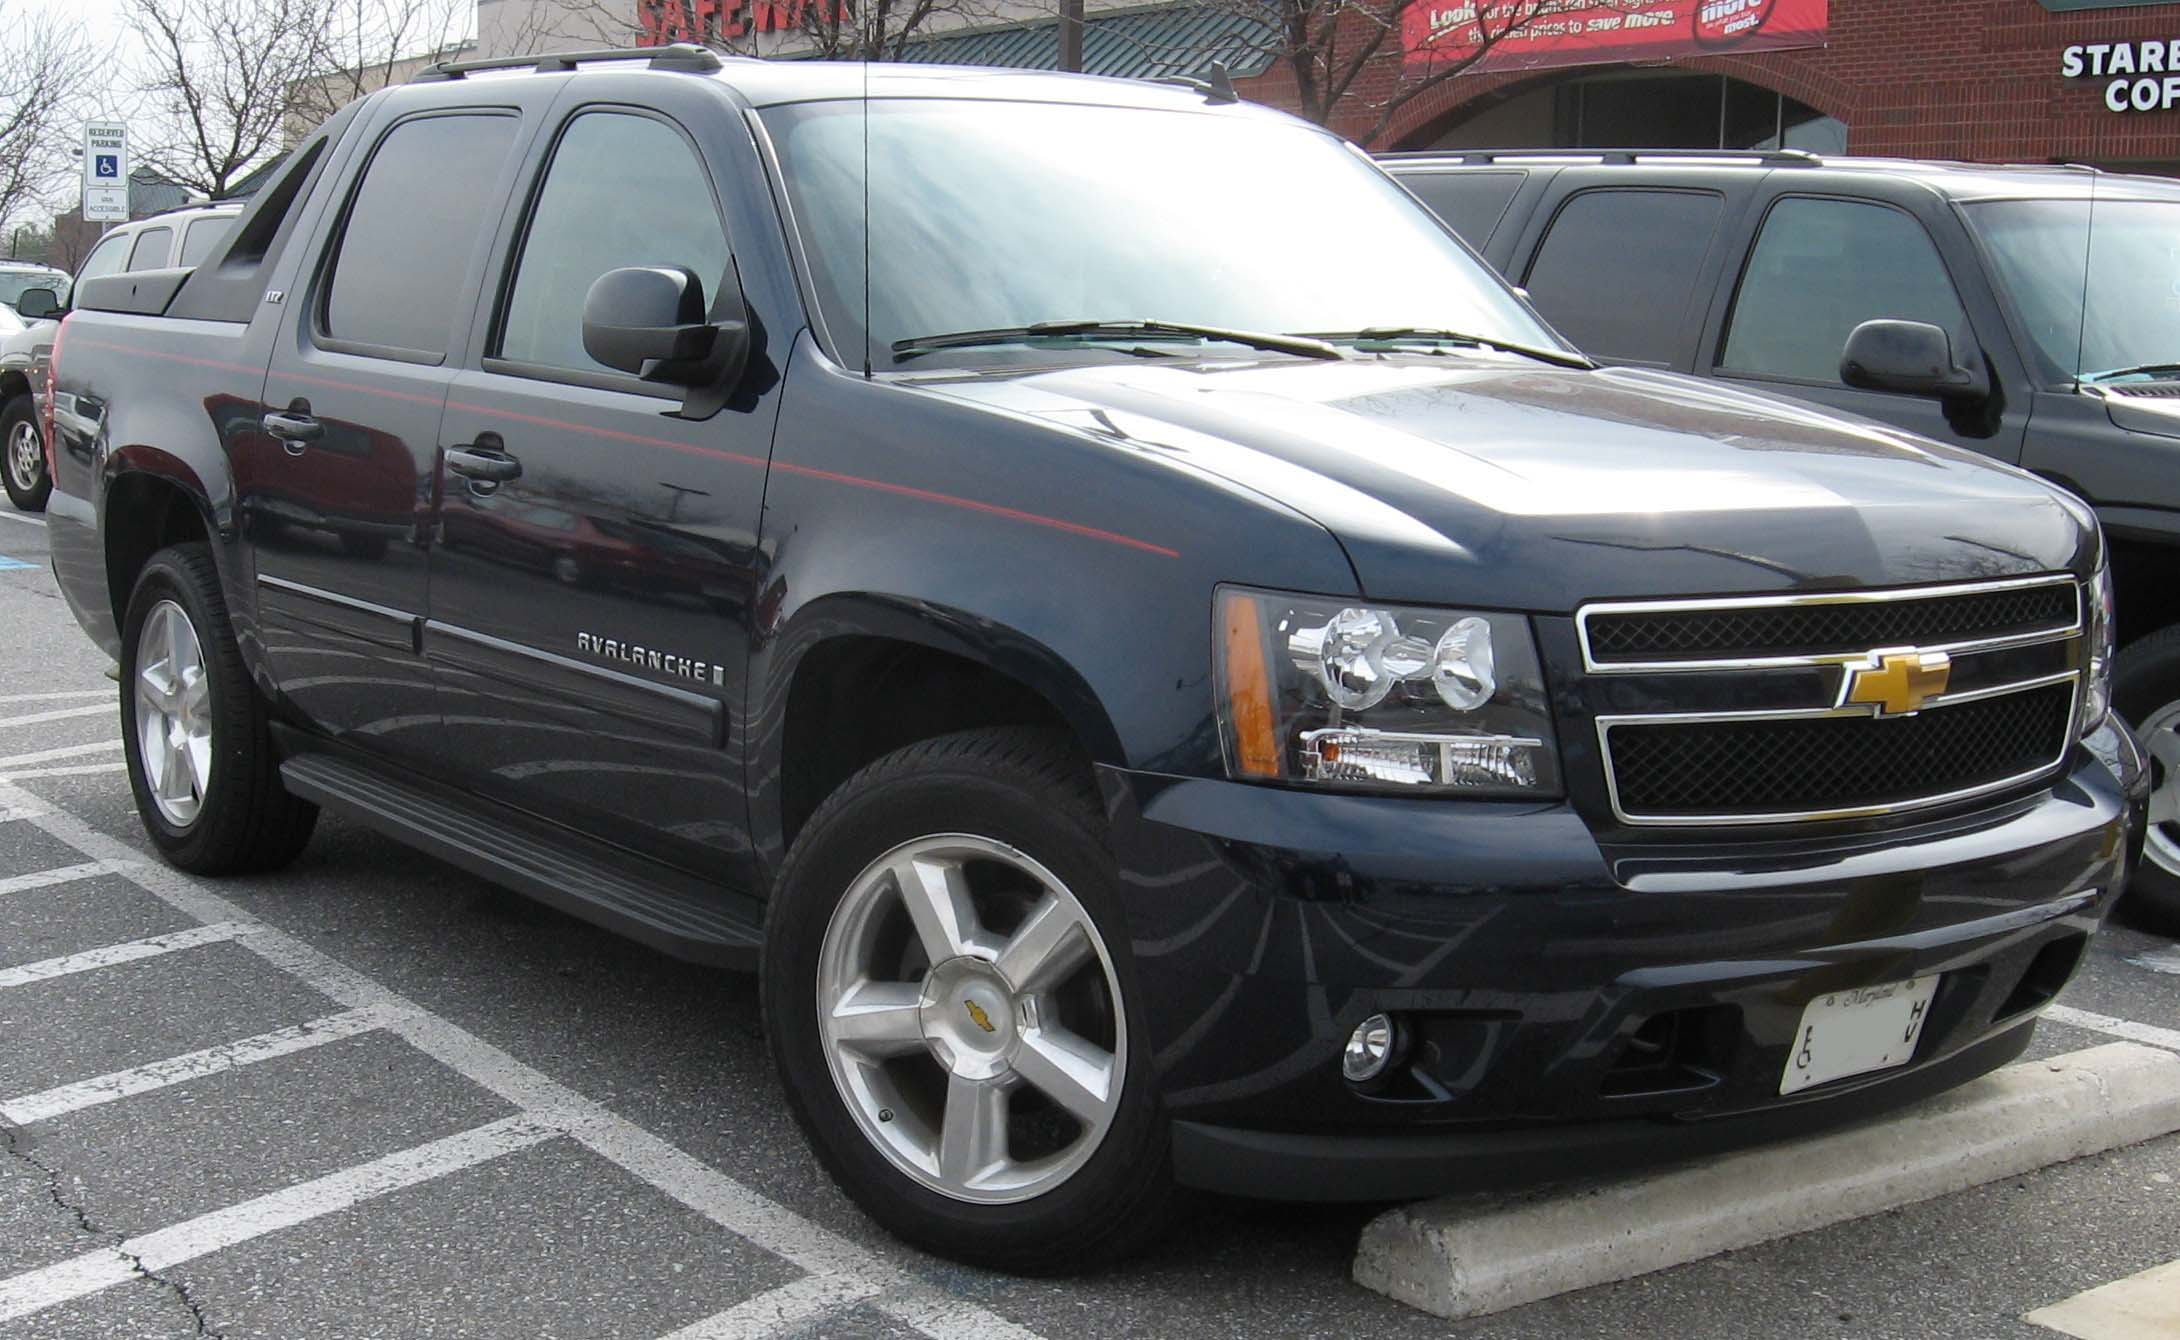 chevrolet-avalanche-02 Great Description About Chevy Avalanche 2013 with Amazing Pictures Cars Review